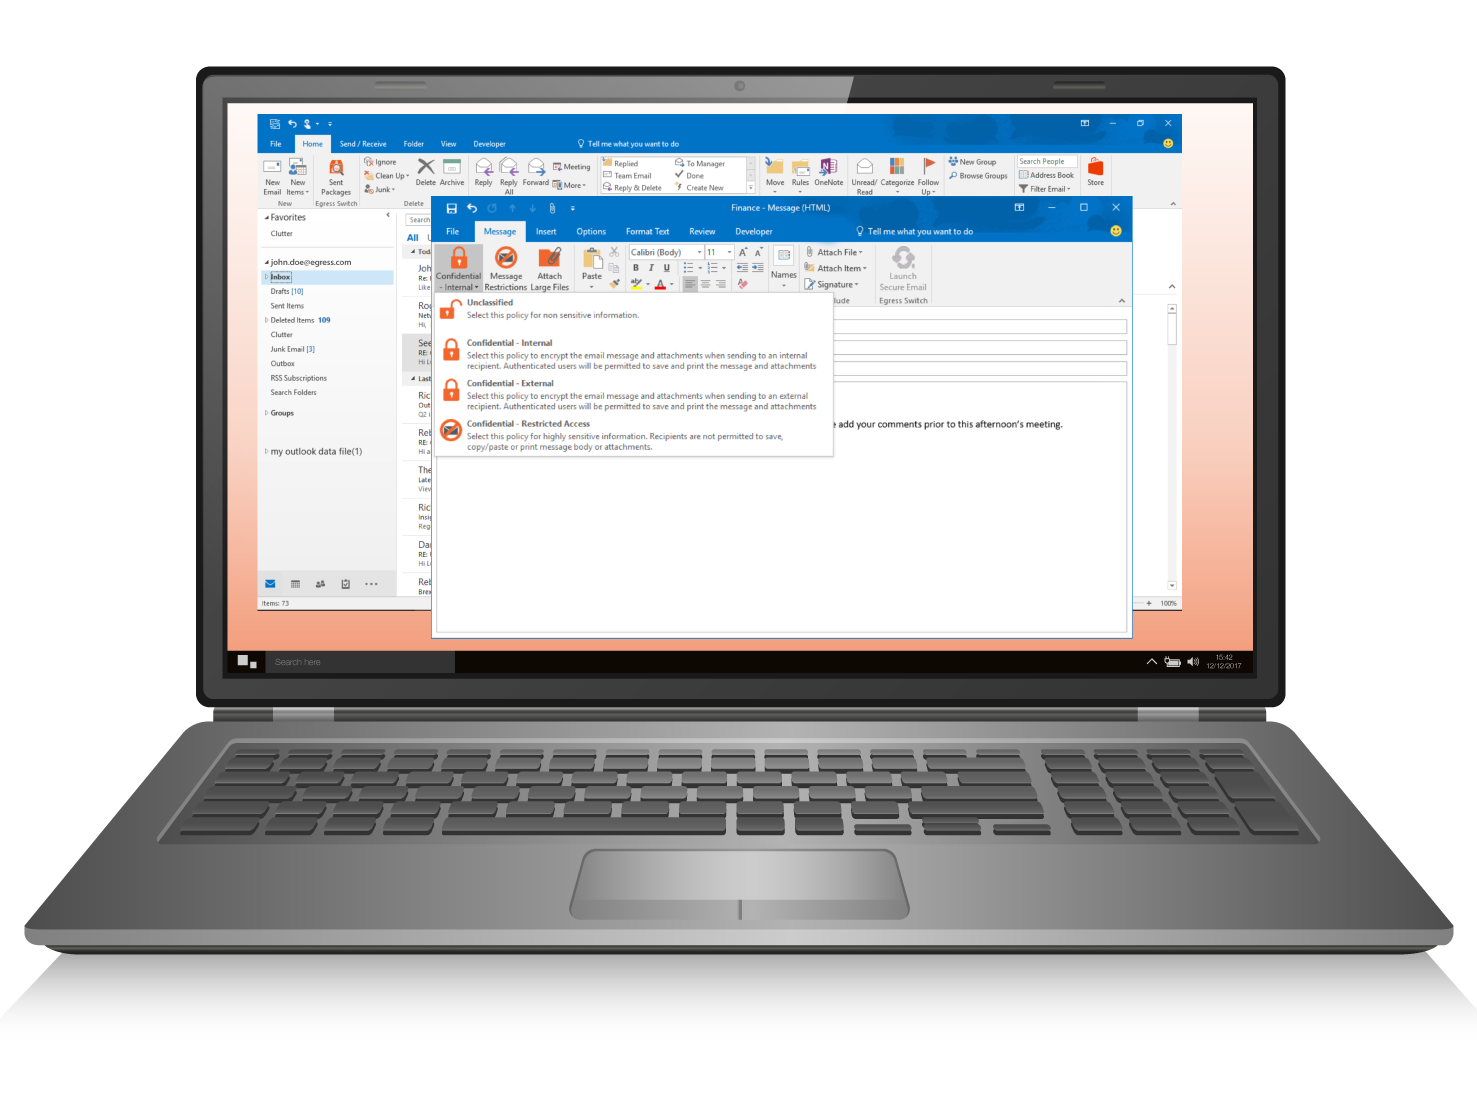 Egress Switch products are fully integrated with Microsoft Office